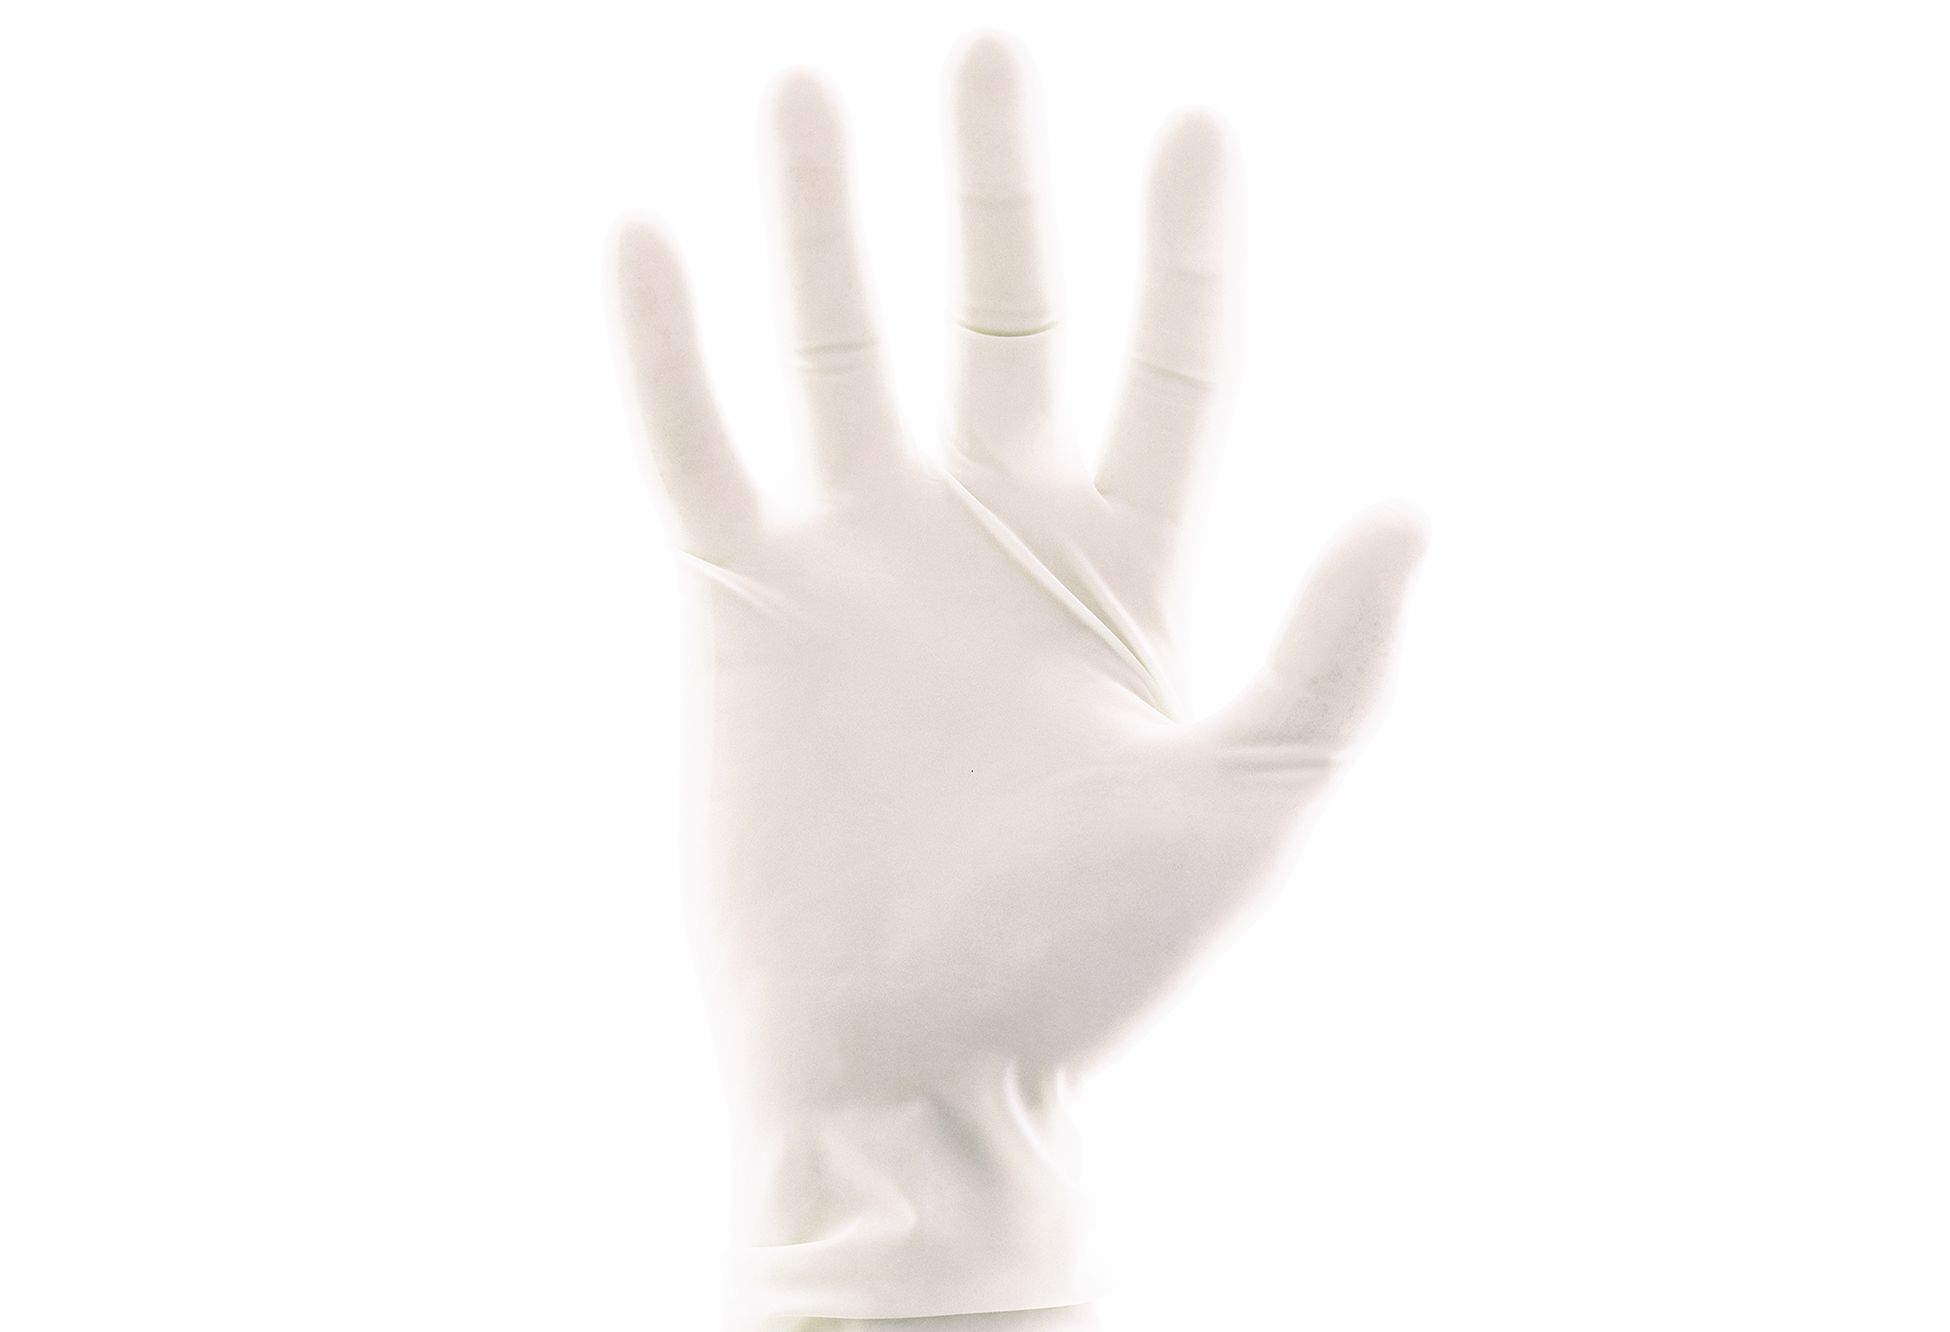 A white medical glove on a white background.